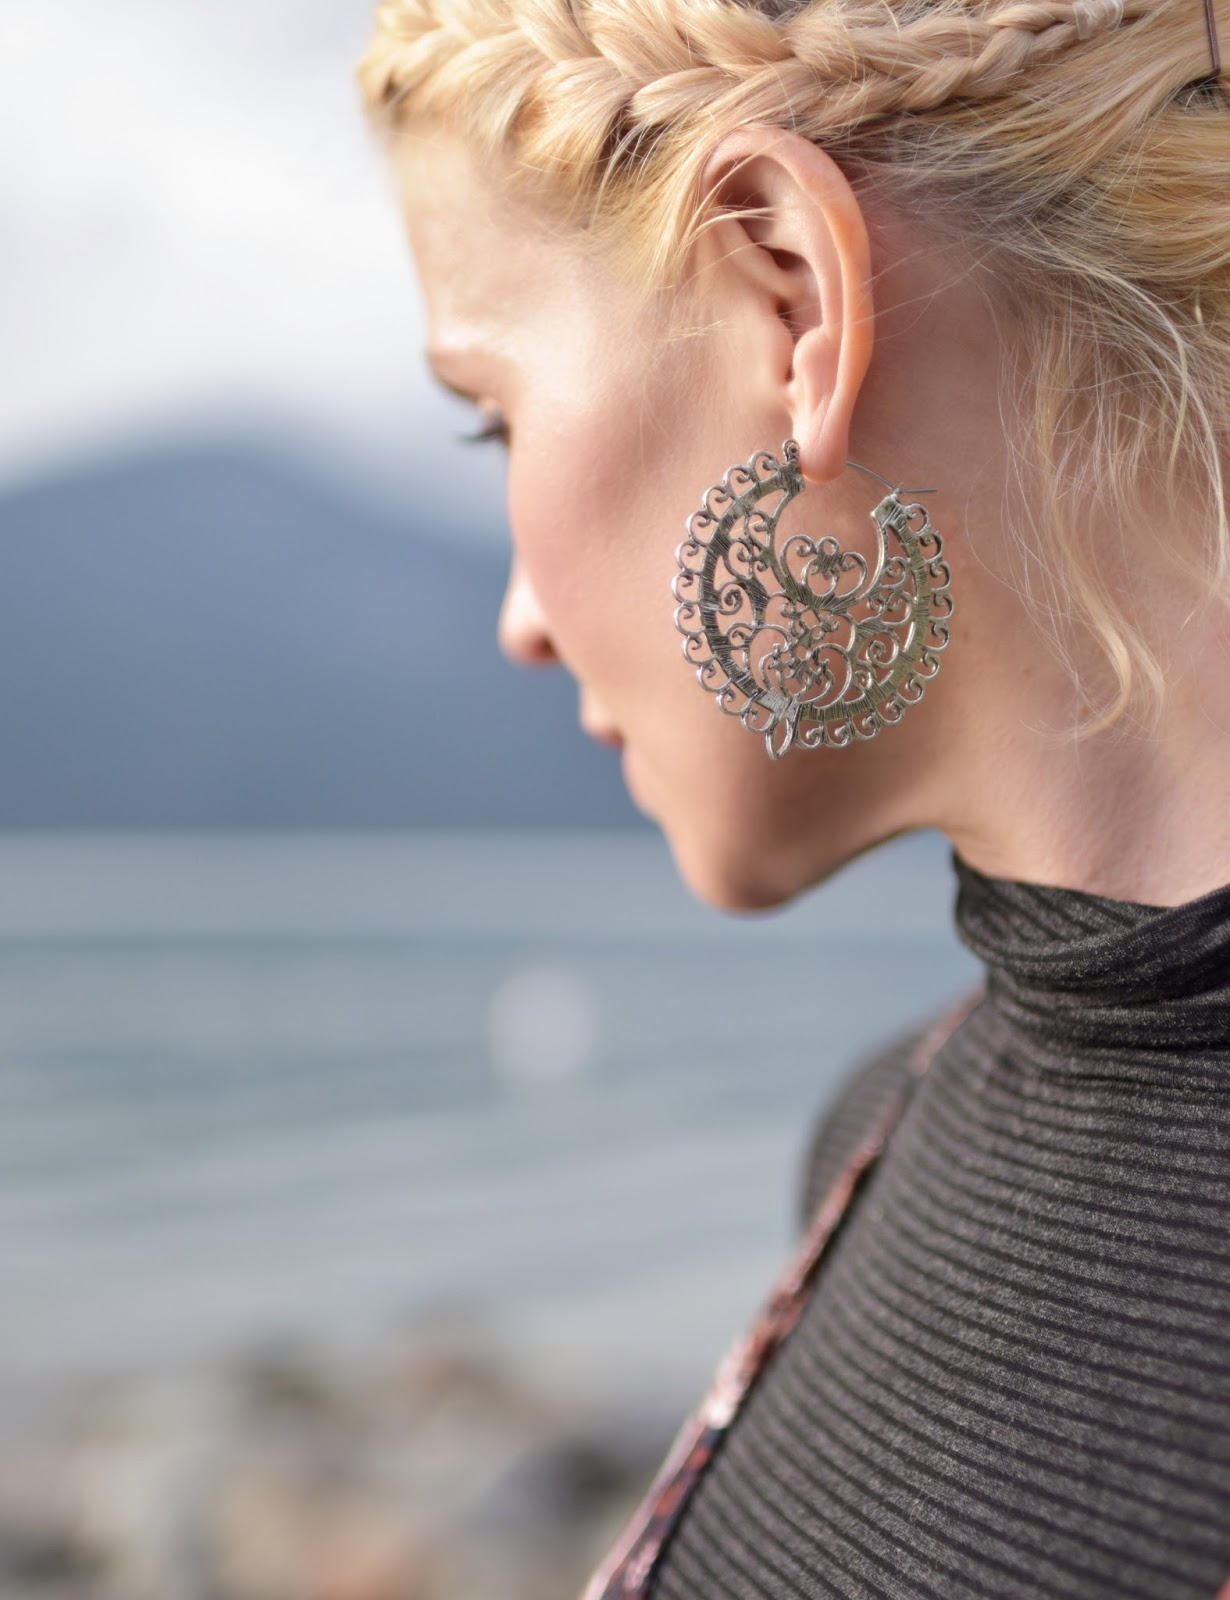 filigree earring, french-braided hair